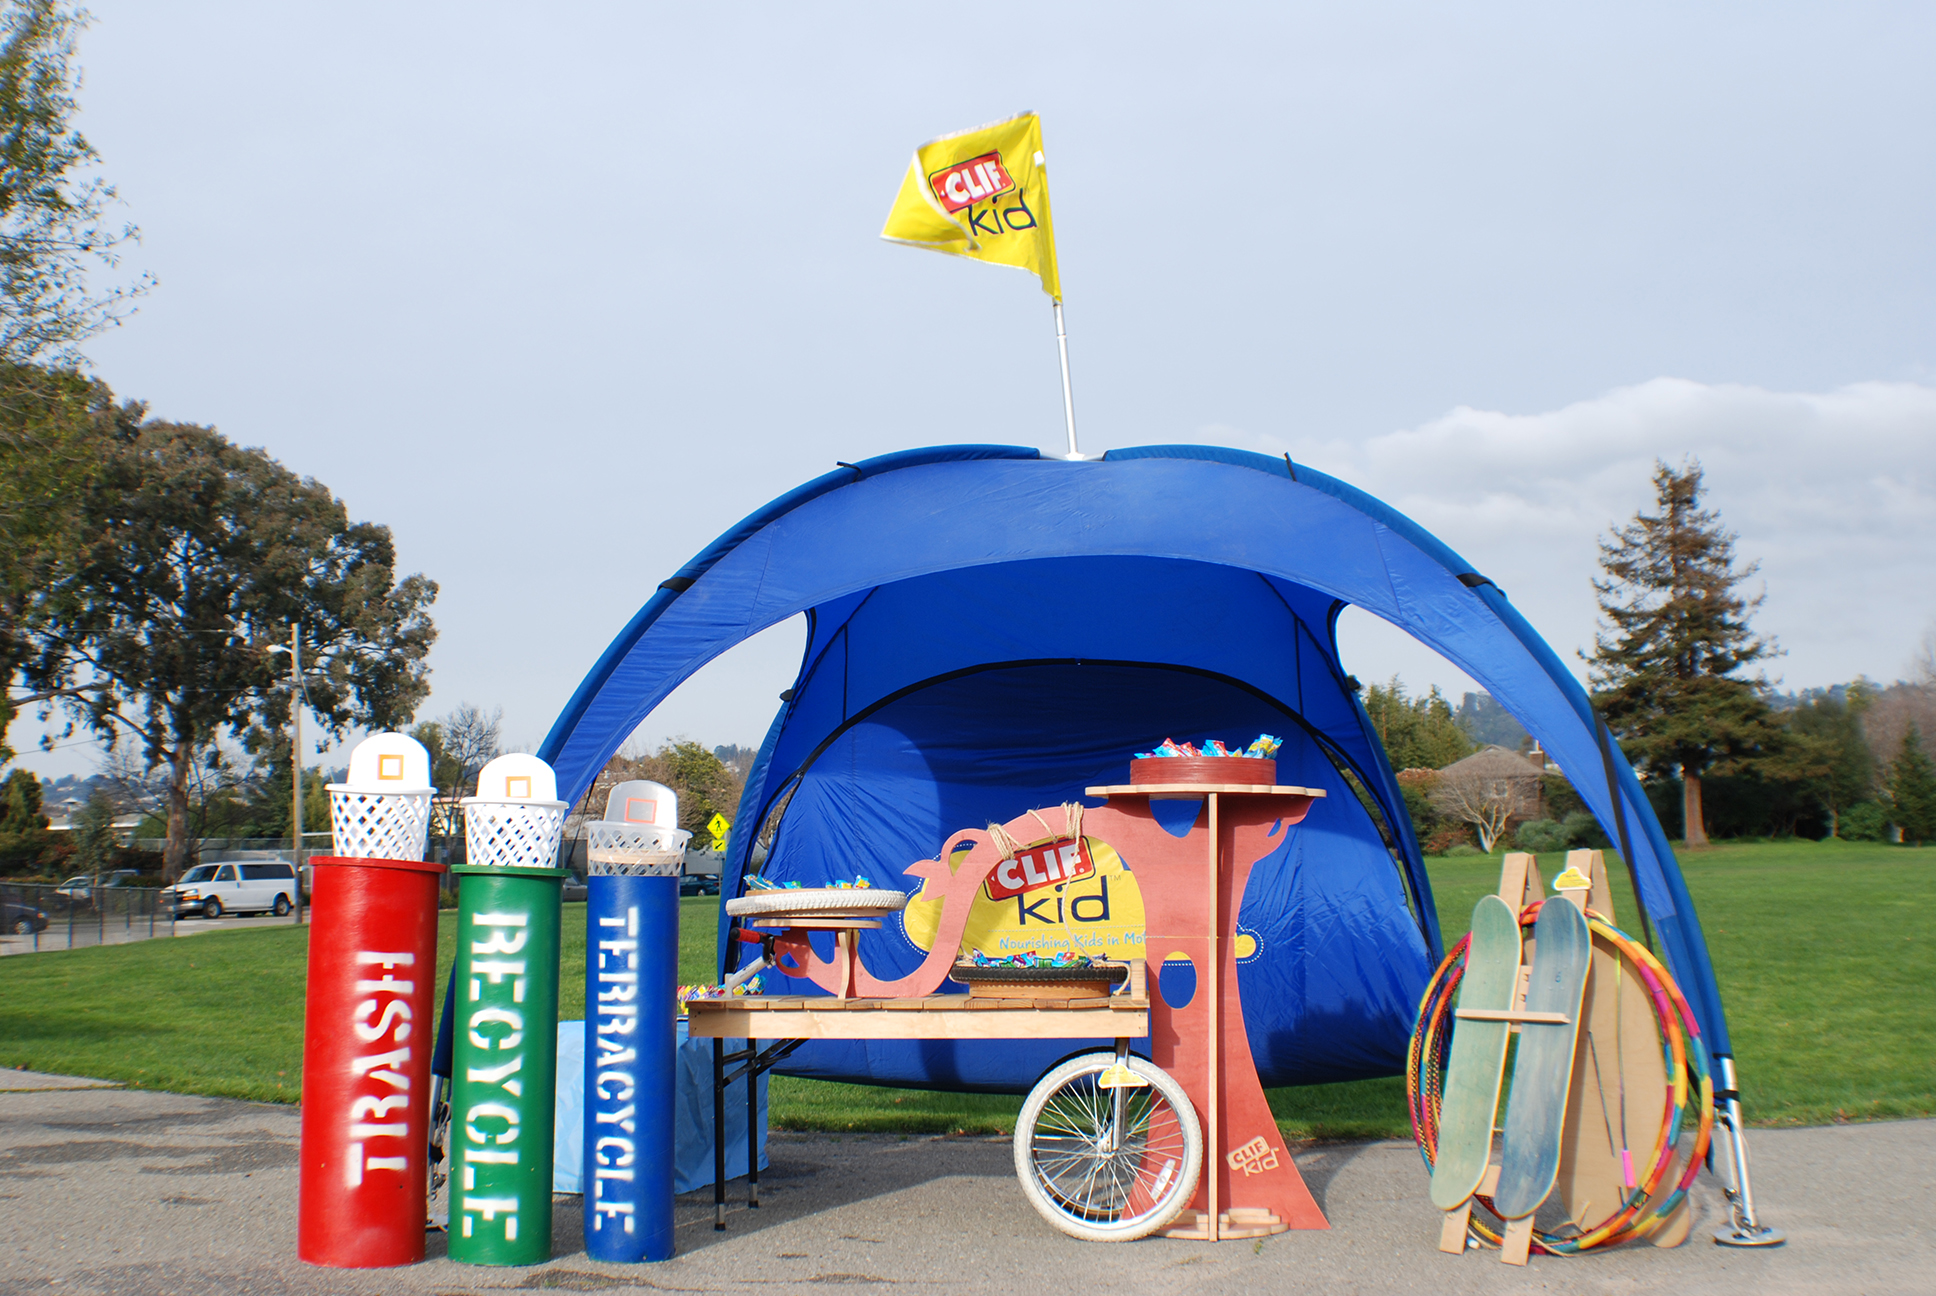 Our client asked us to create a fully portable booth for their 'ClifKids' brand. It had to meet a list of criteria, including being very kid friendly, made of re-used / recycled parts and easy for one person to put together.